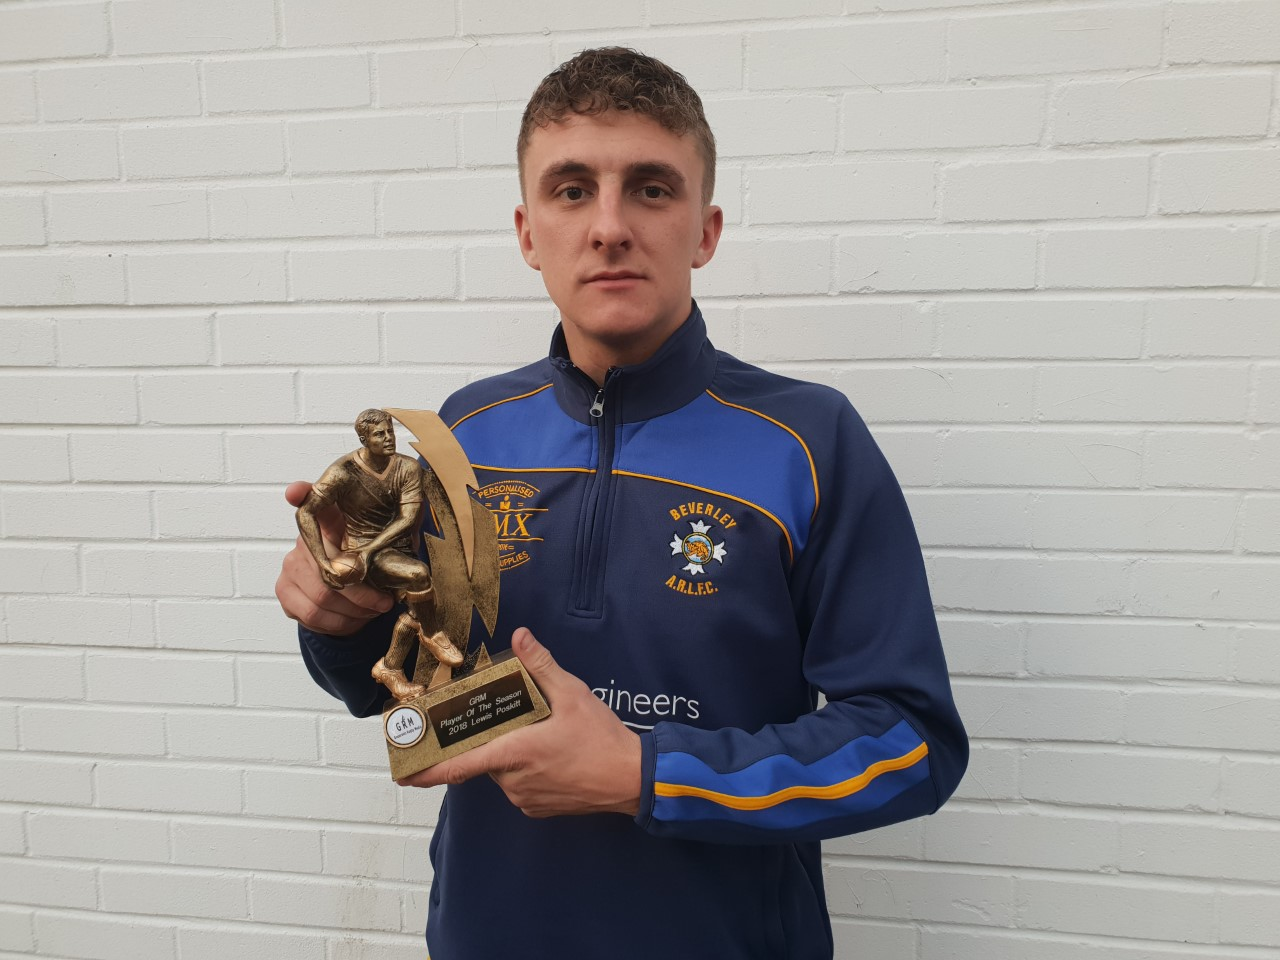 Lewis Poskitt was named GRM SPORT's open age player of the year for season 2 (2018)